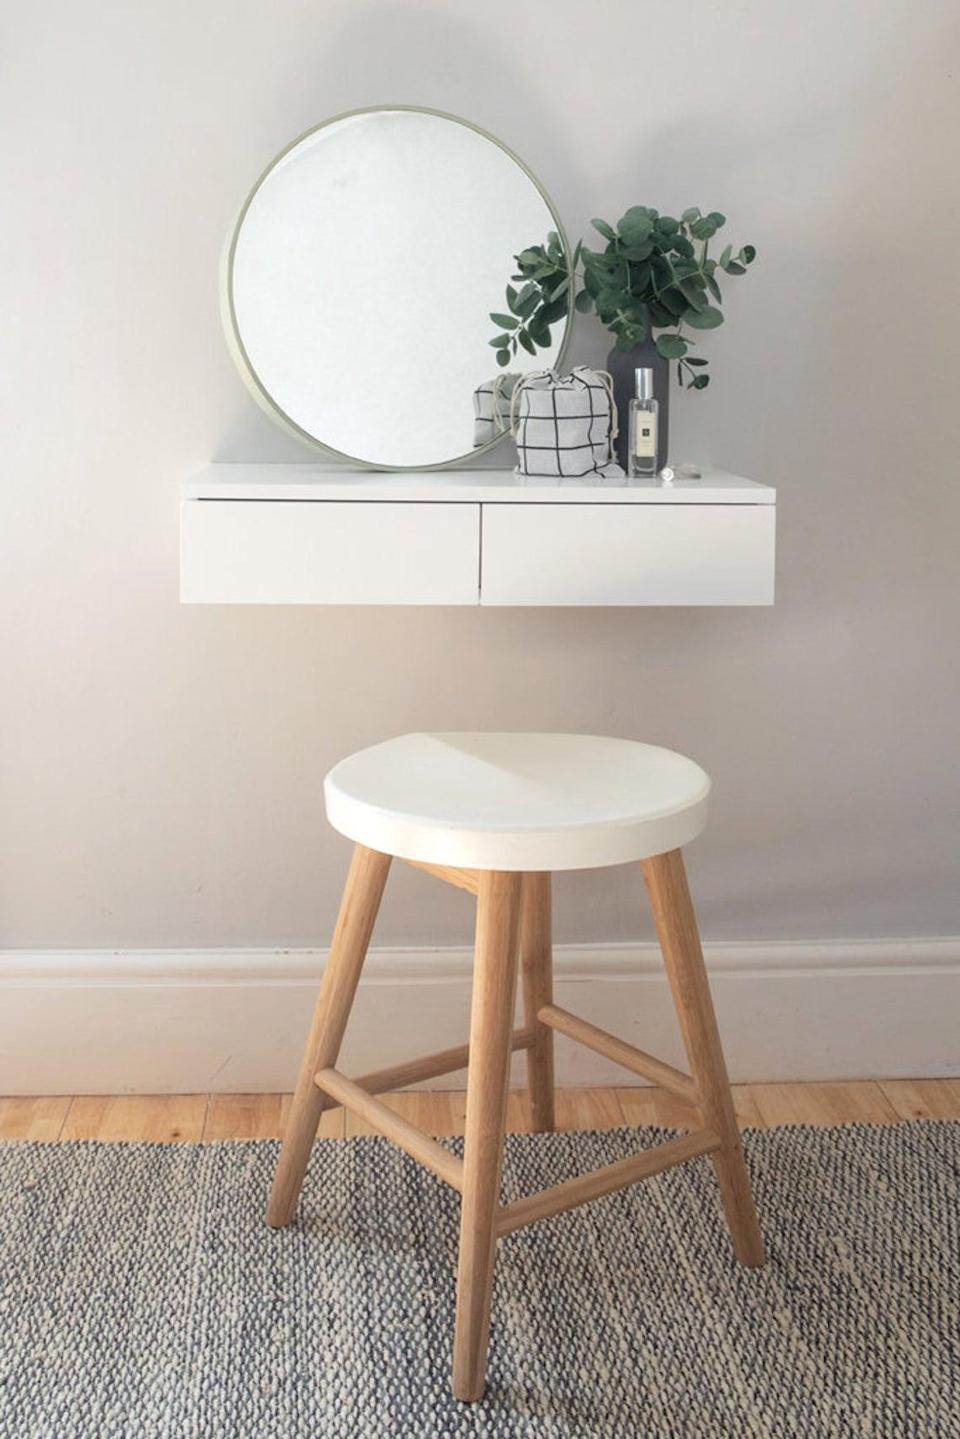 "<h3>Urbansize Small Floating Dressing Table<br></h3> <br>This Etsy shop dedicated to crafting urban-sized (aka small-space friendly) furniture solutions boasts quite the <a href=""https://www.etsy.com/shop/Urbansize"" rel=""nofollow noopener"" target=""_blank"" data-ylk=""slk:stacked lineup of incredibly stylish and minimalist floating desk setups"" class=""link rapid-noclick-resp"">stacked lineup of incredibly stylish and minimalist floating desk setups</a>. <br><br><strong>Urbansize</strong> Small Floating Dressing Table White, $, available at <a href=""https://go.skimresources.com/?id=30283X879131&url=https%3A%2F%2Fwww.etsy.com%2Flisting%2F718170427%2Fsmall-floating-dressing-table-white"" rel=""nofollow noopener"" target=""_blank"" data-ylk=""slk:Etsy"" class=""link rapid-noclick-resp"">Etsy</a>"